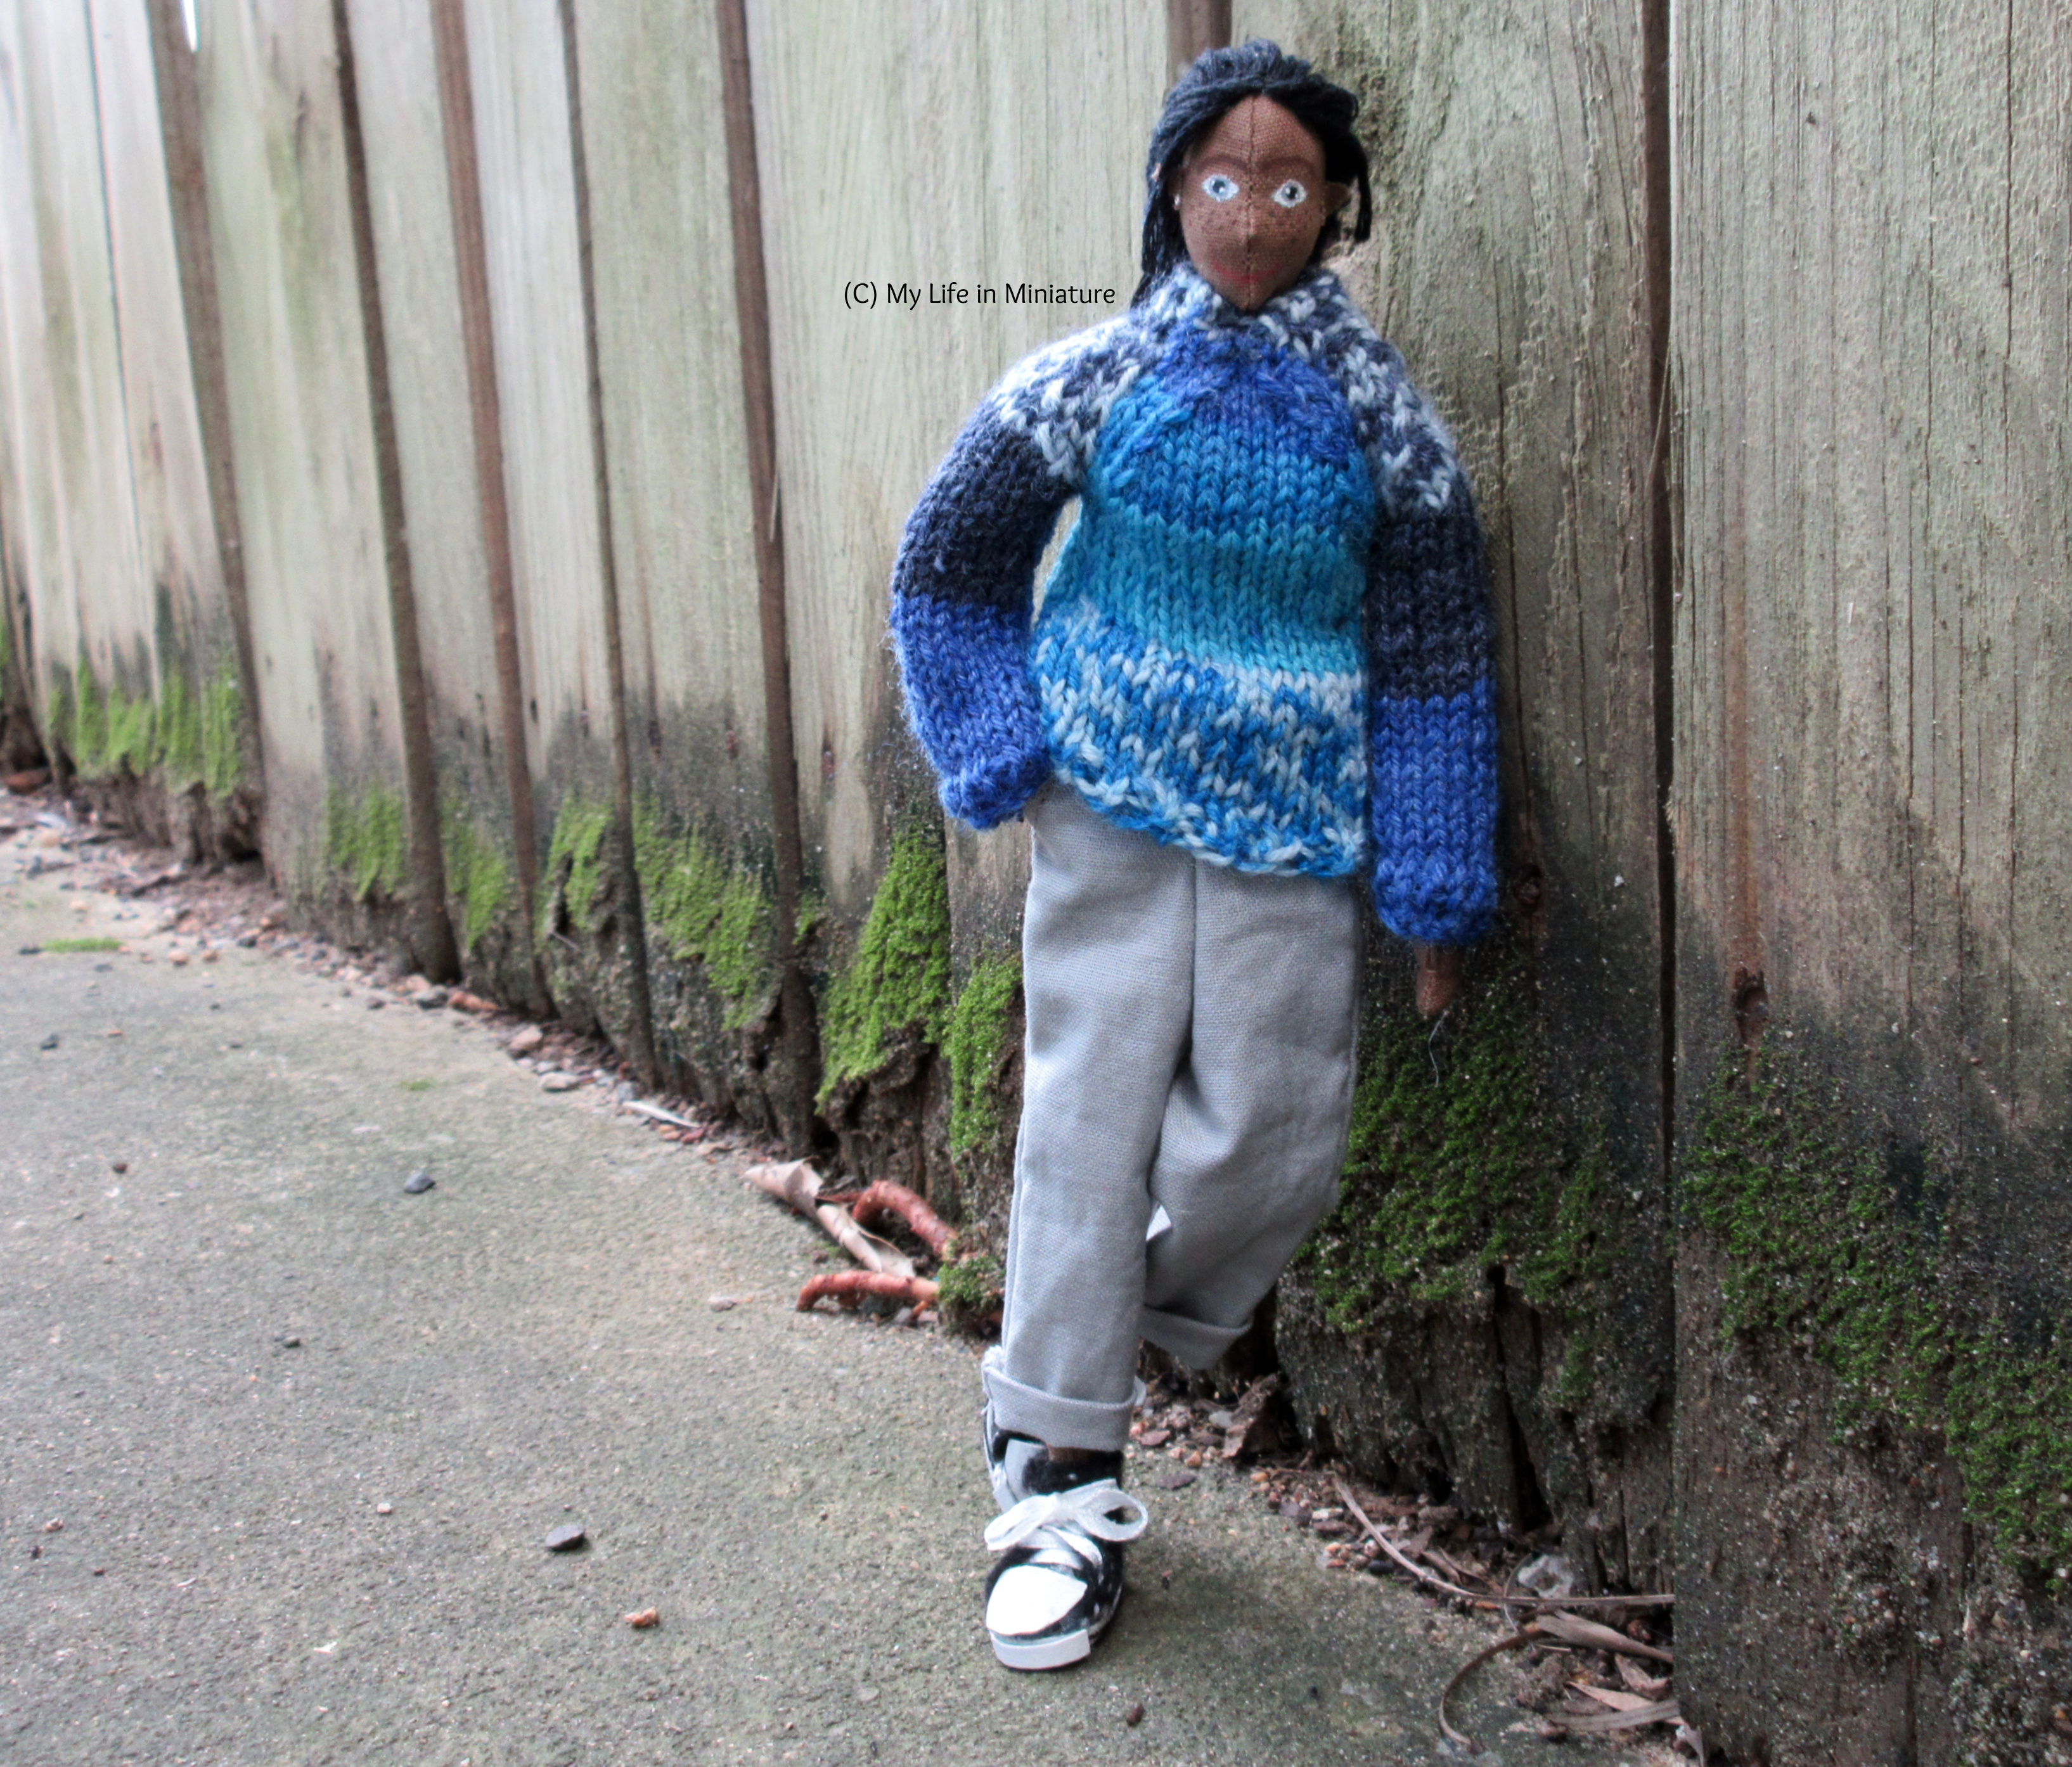 Petra leans a shoulder against a wooden fence, one hand in her pocket and one foot propped up. She's looking at the camera, wearing the blue jumper, grey pants, and black shoes.